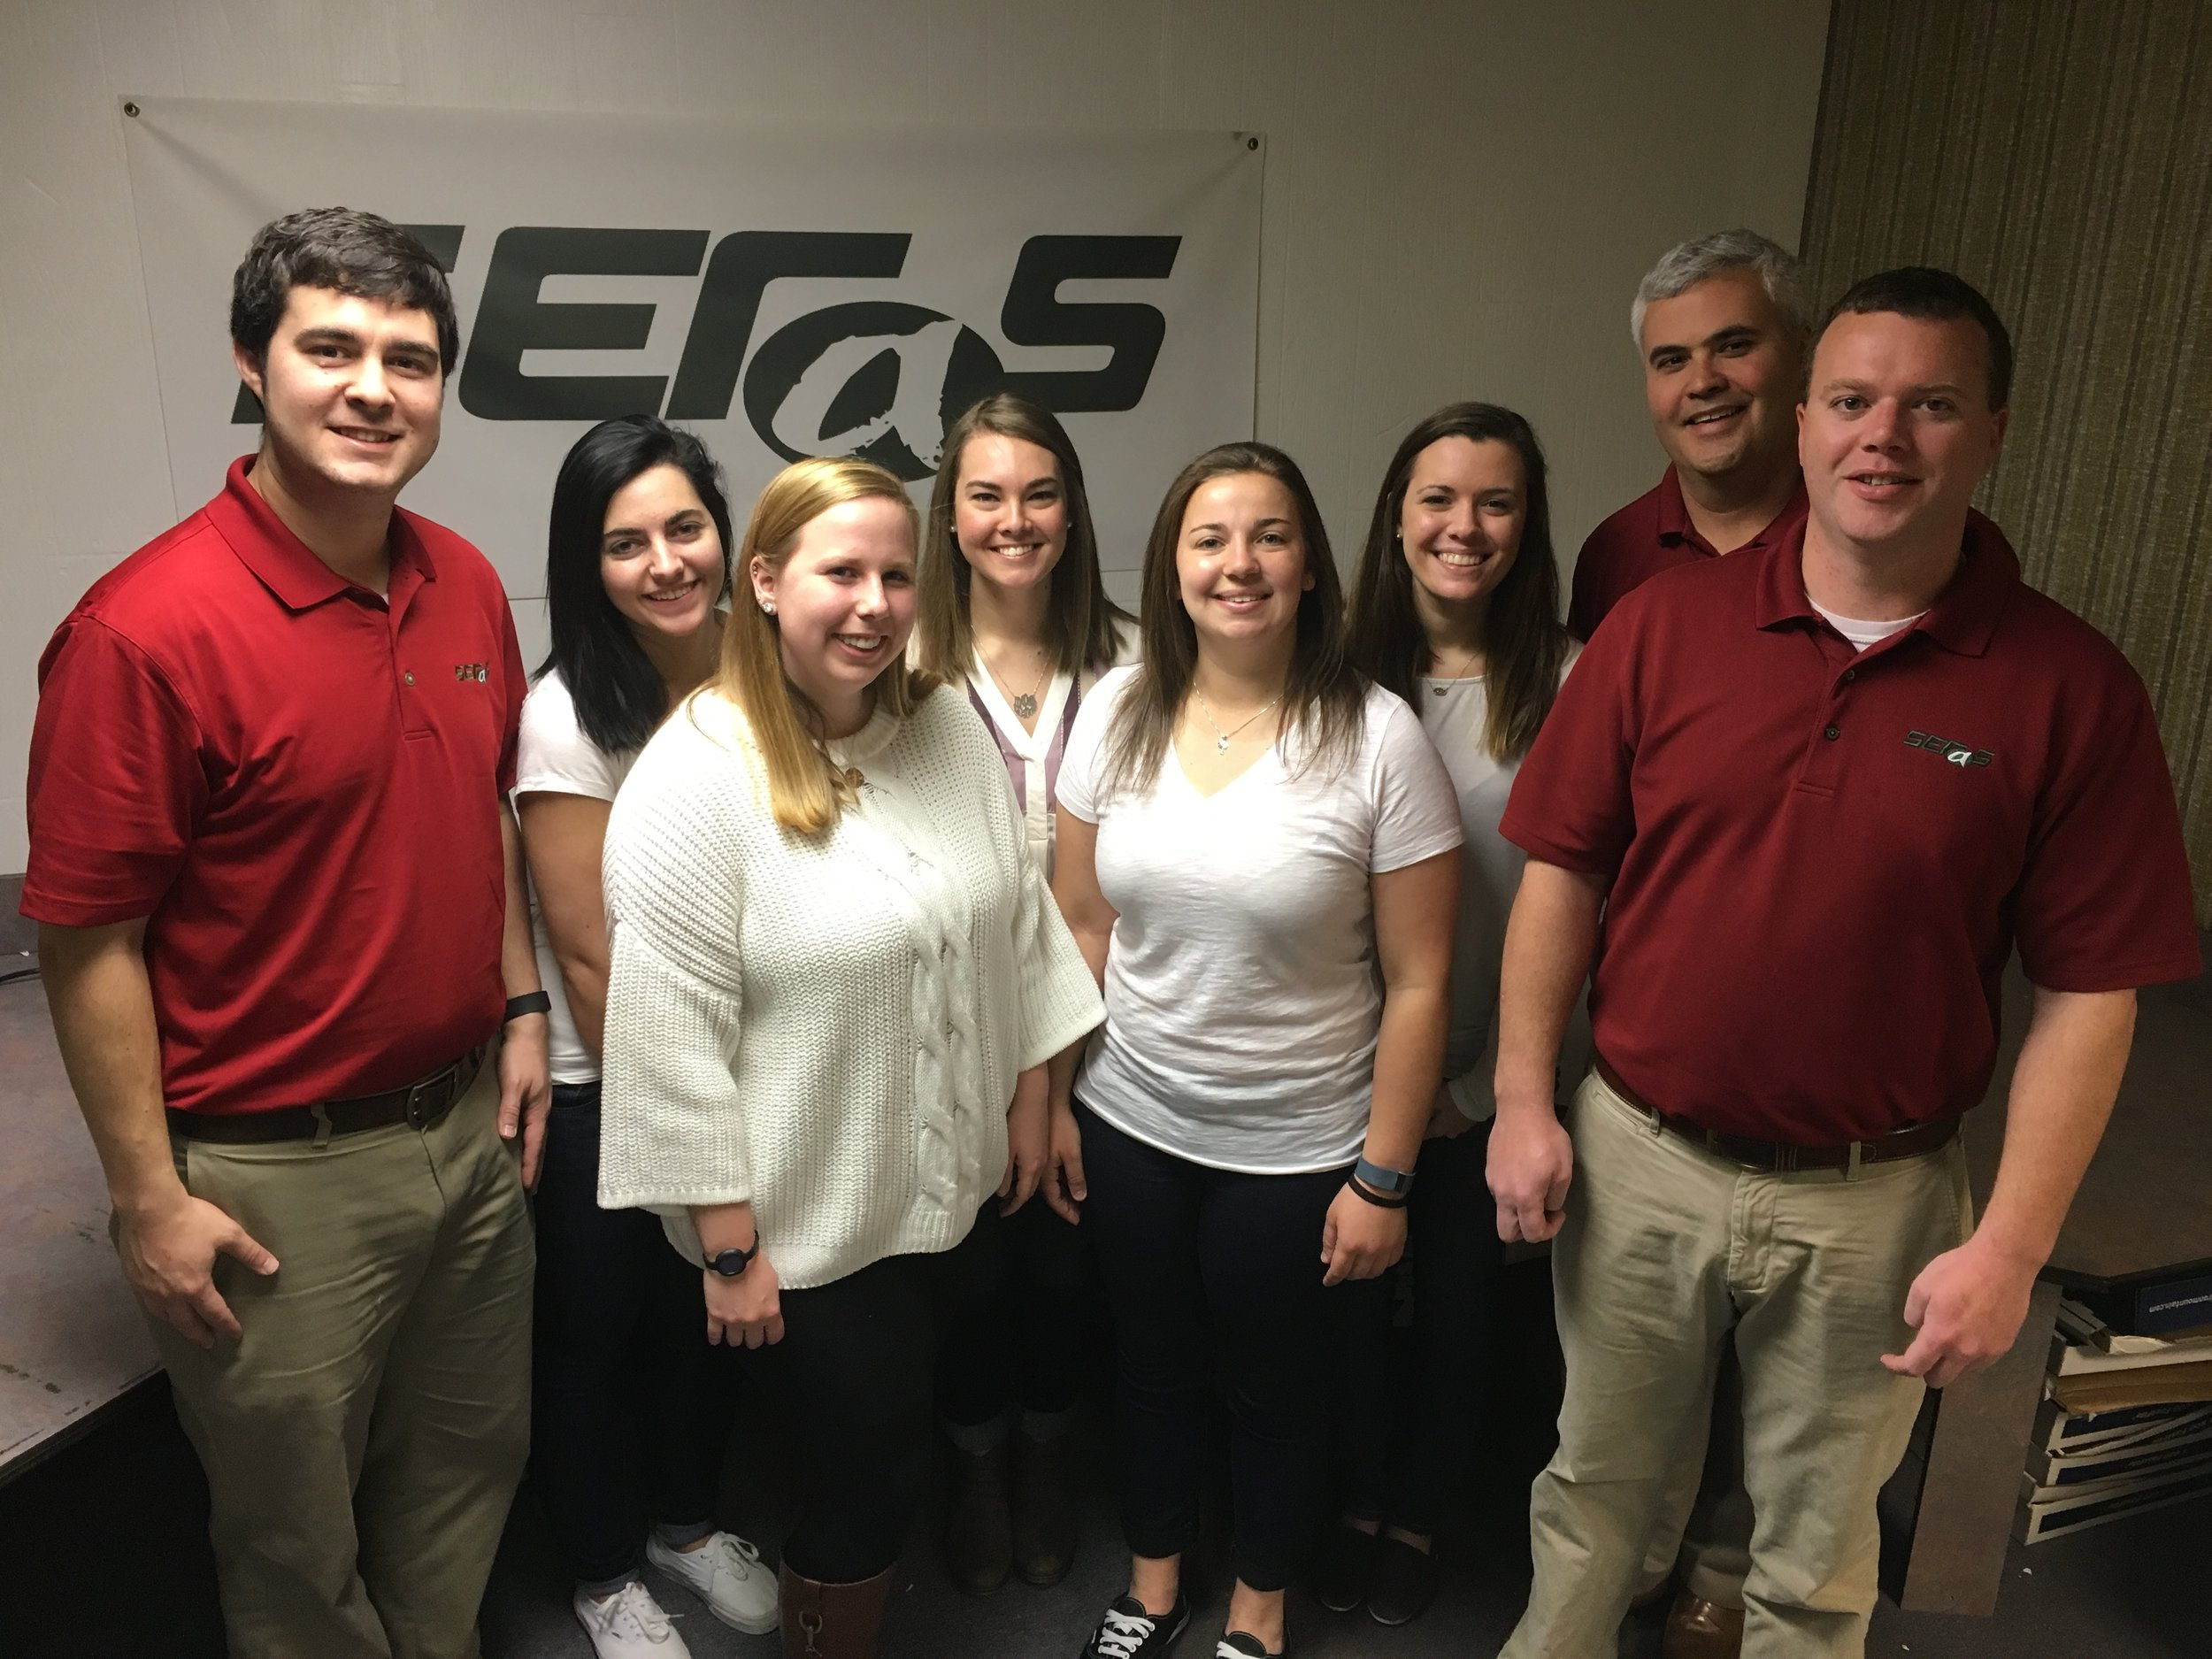 Some of our IT & Computer Support Services team as well as our Records Management & Document Scanning Team.